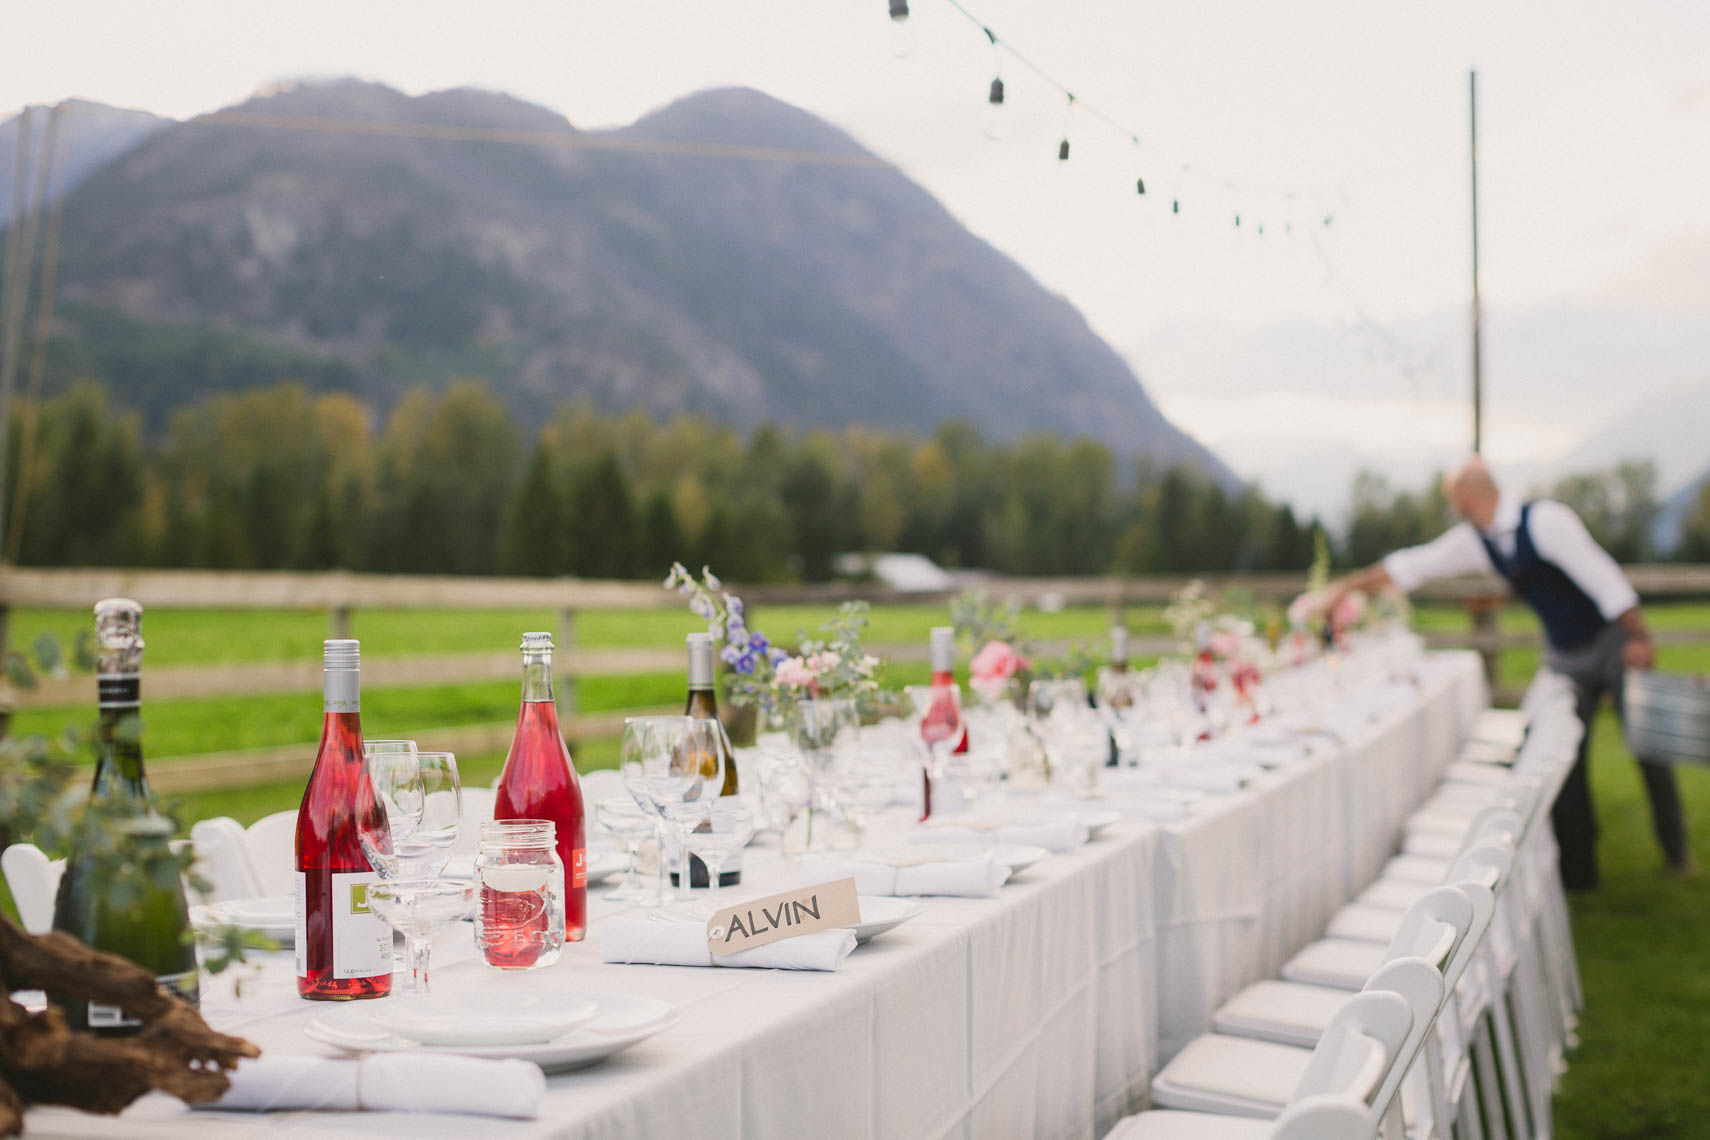 Outdoor wedding table setup at farm reception near Whistler, BC.